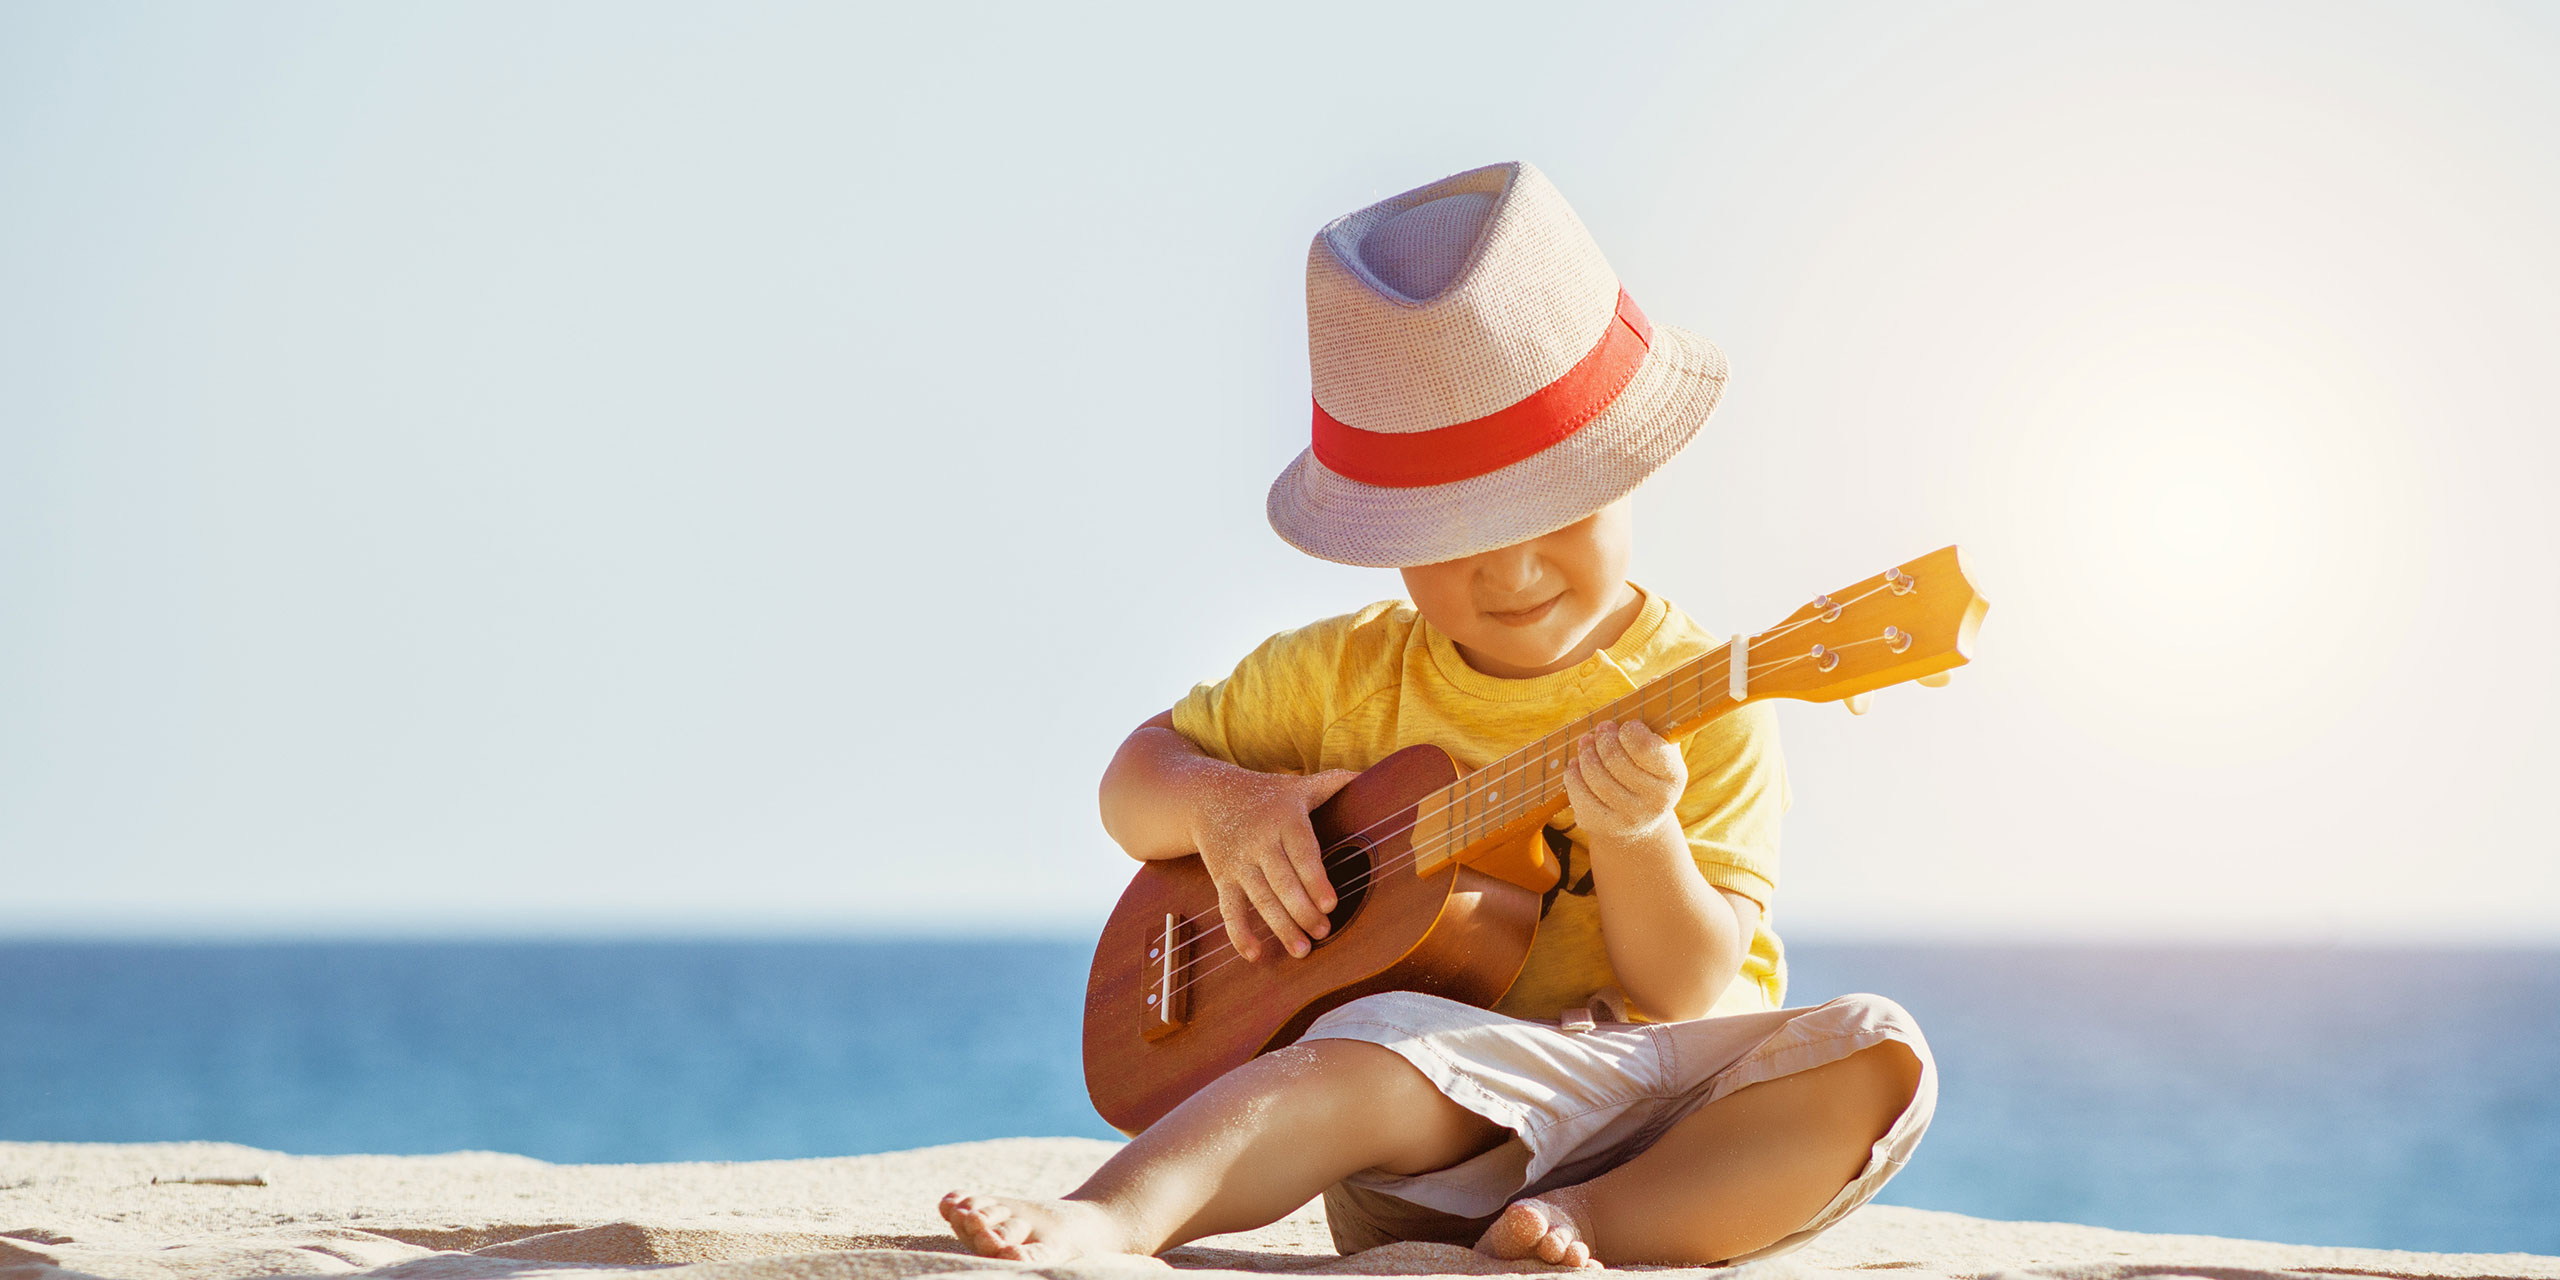 Little Boy Playing Ukulele in Hawaii; Dmitry Molchanov/Shutterstock.com